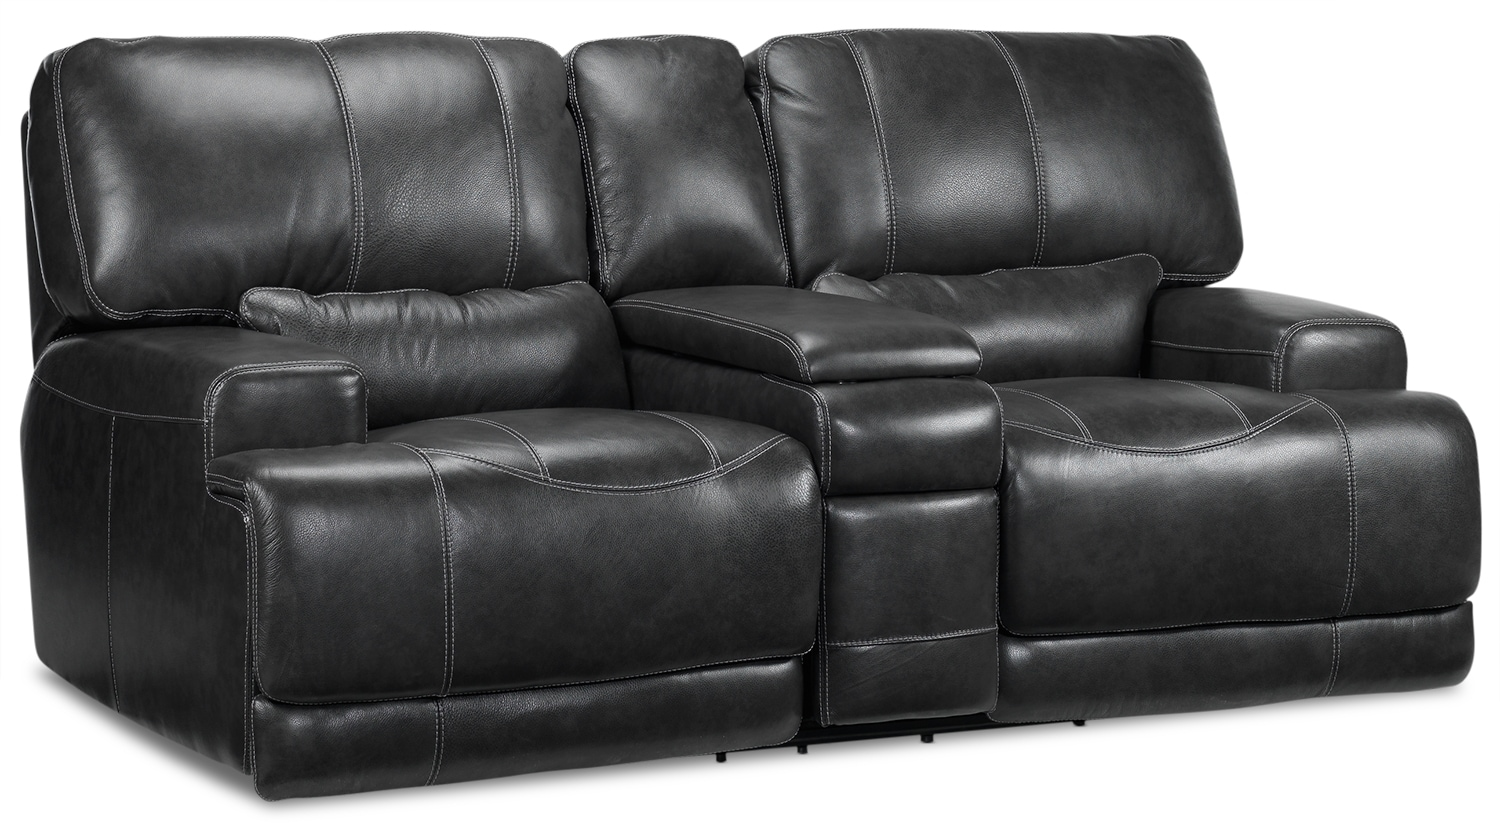 Dearborn Power Reclining Loveseat With Console Charcoal